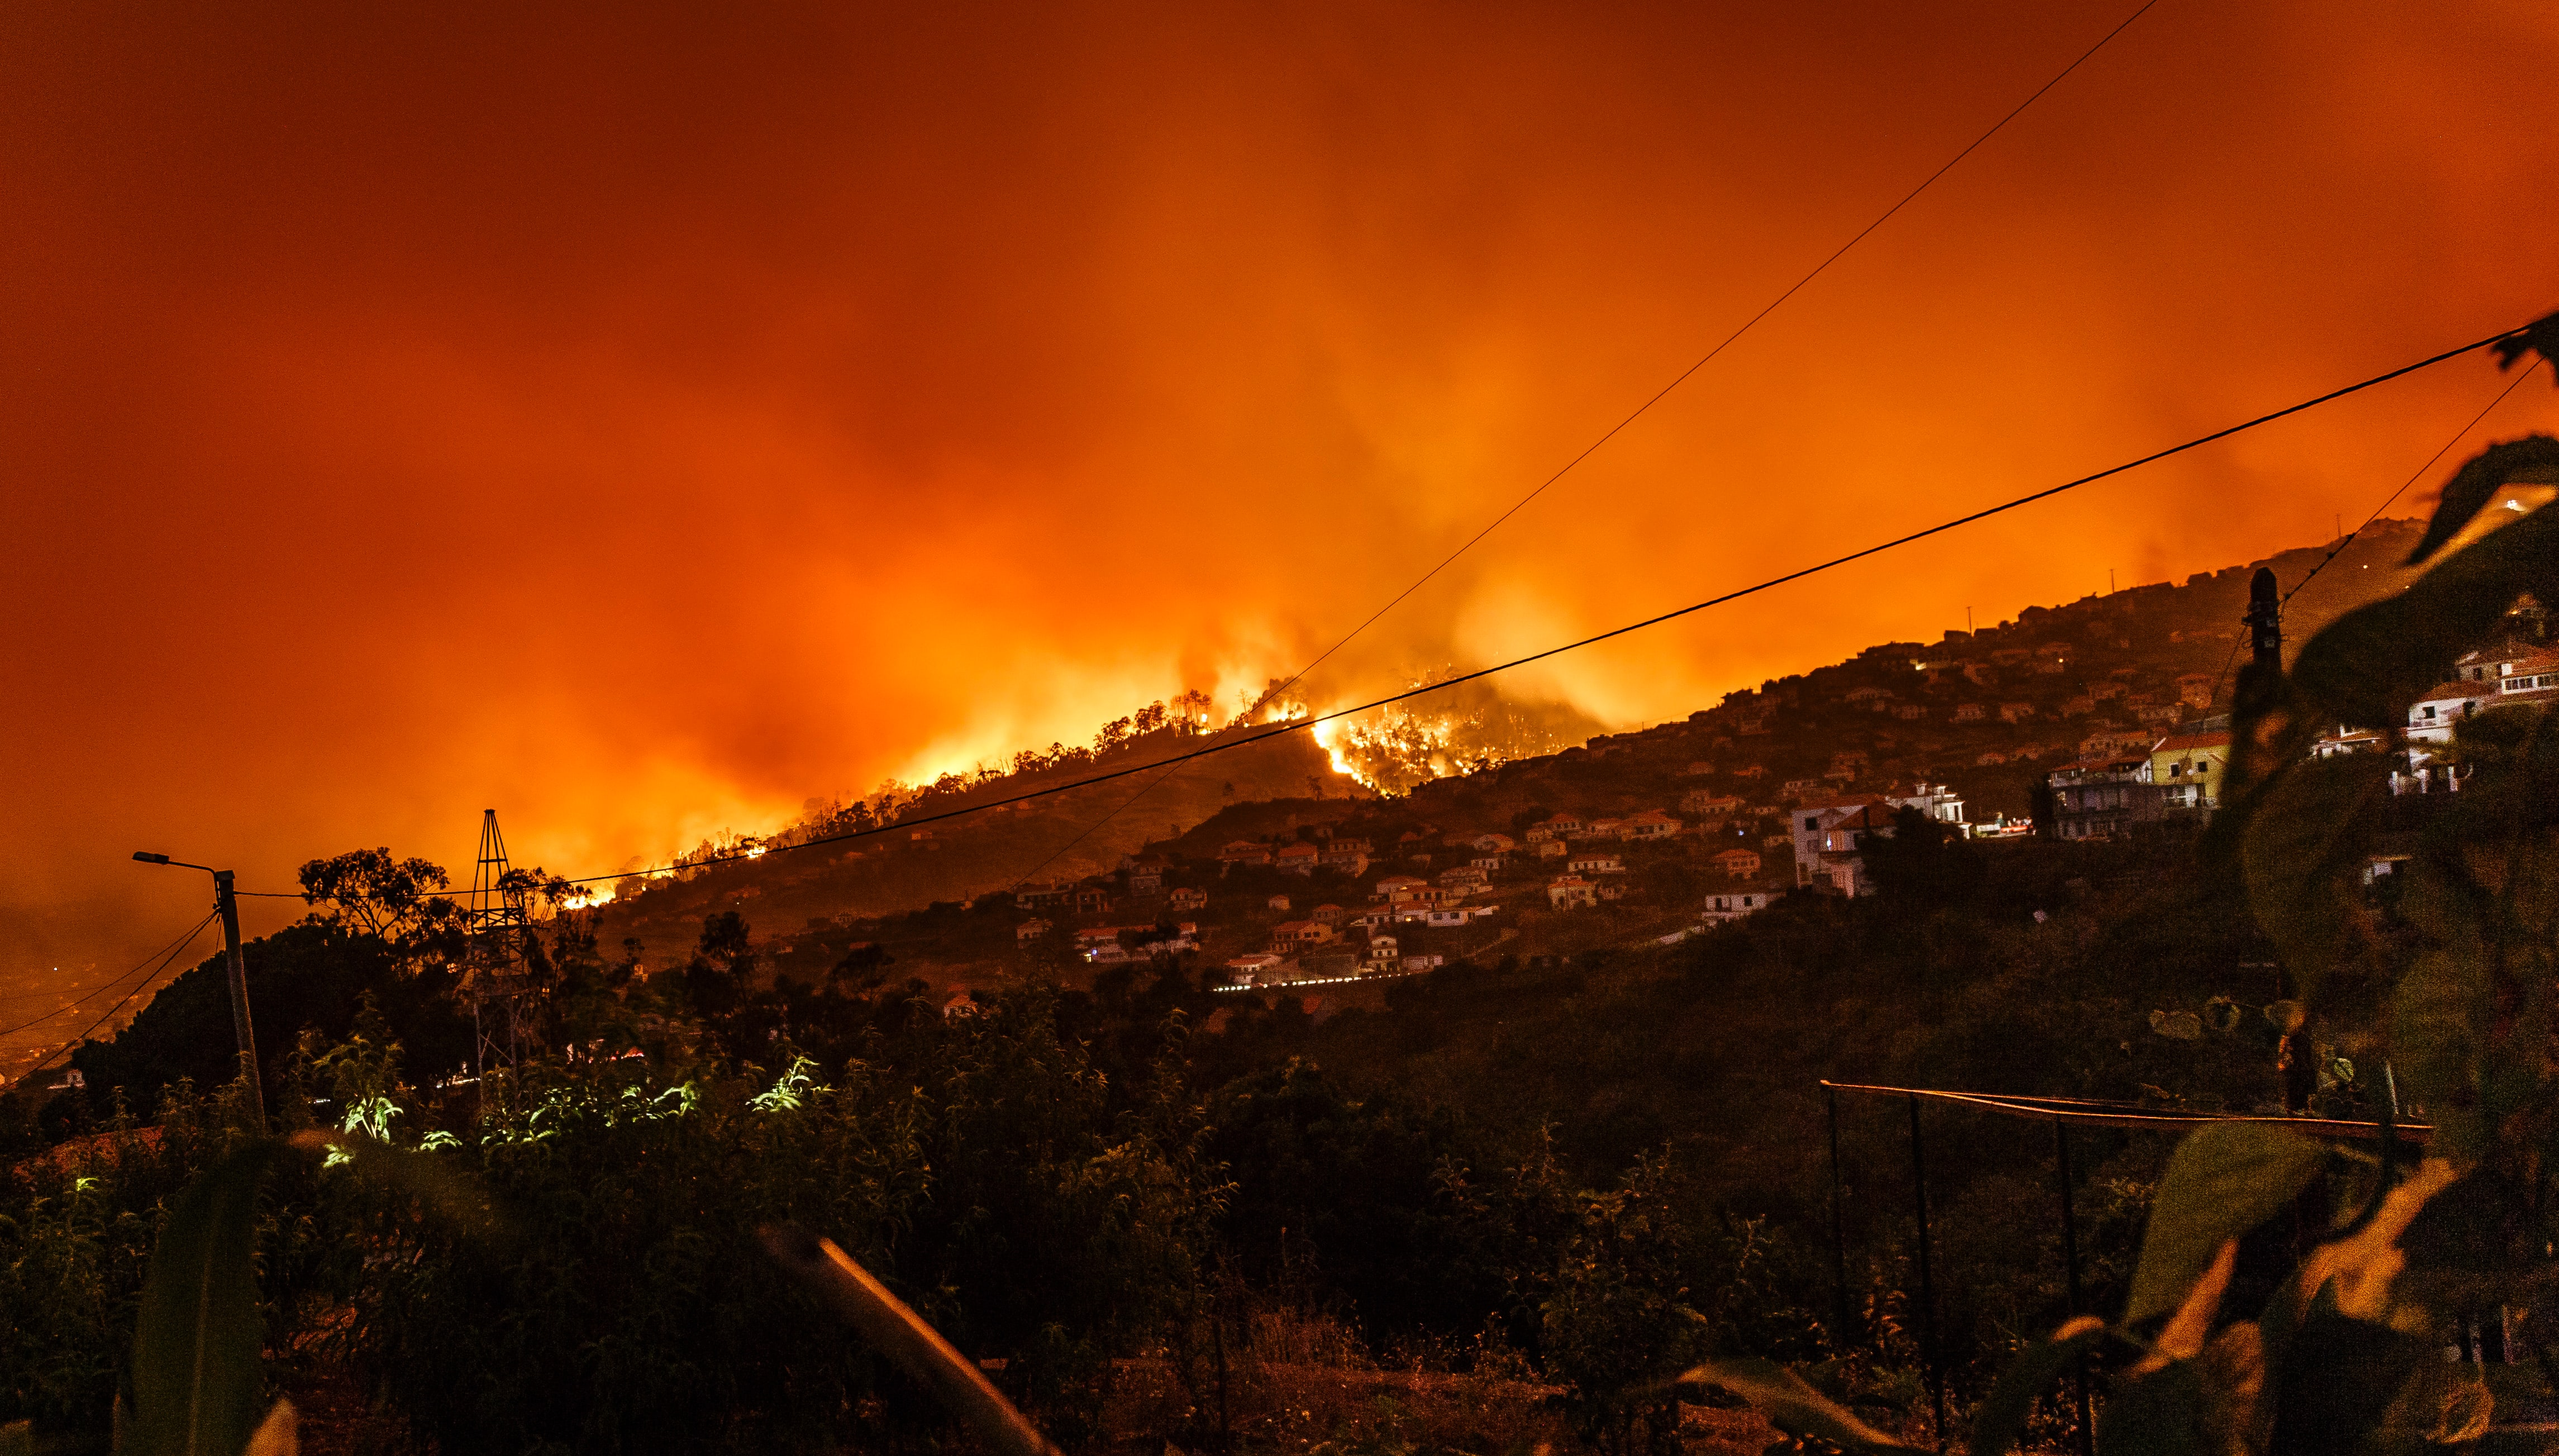 Image of a wildfire encroaching on a town in Portugal.